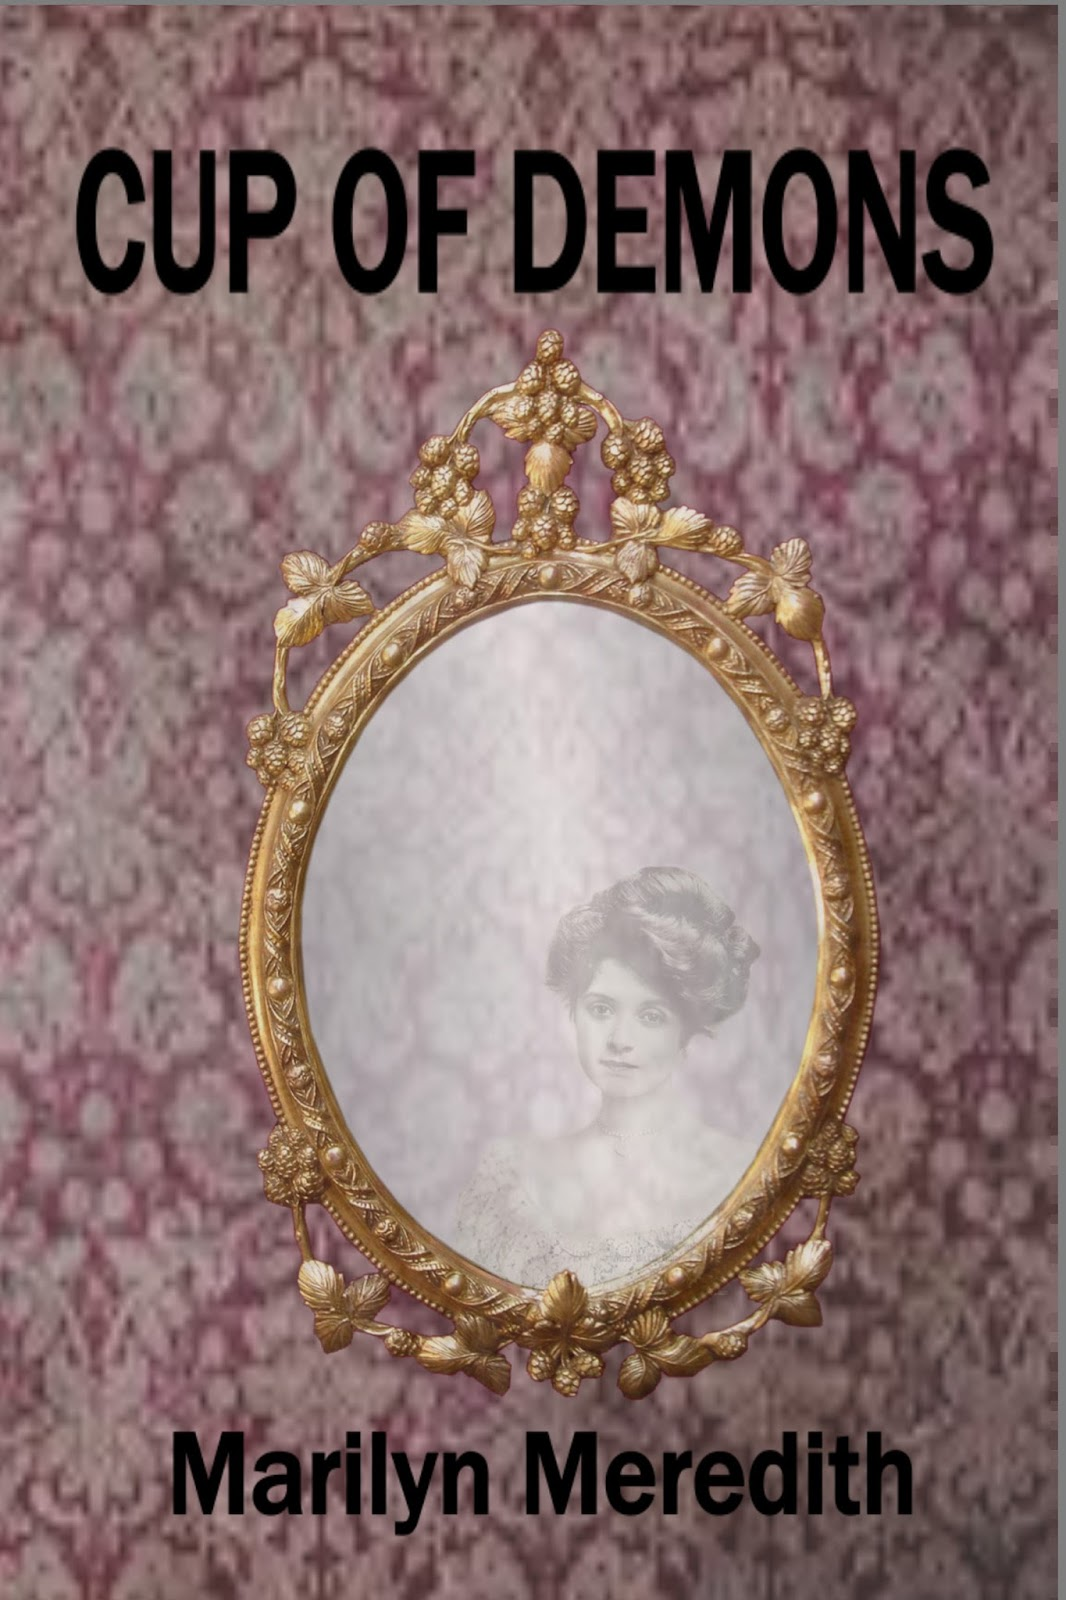 Lorna collins author october 2017 these had only been published as ebooks marilyn requestedand receivedher rights back for these we began with cup of demons fandeluxe Image collections